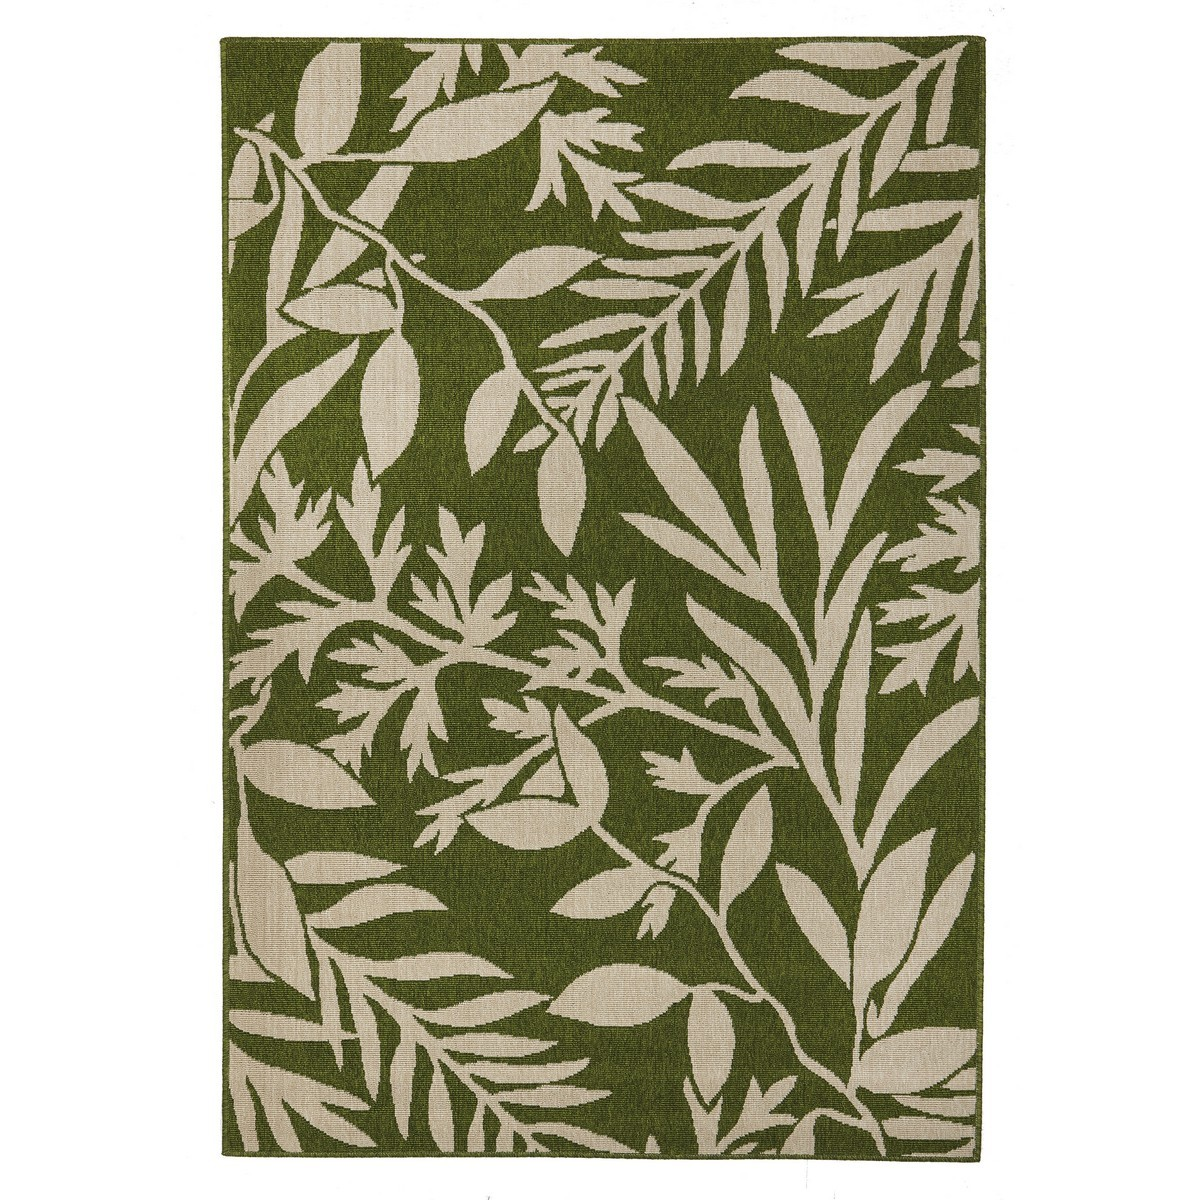 Alfresco Malibu Egyptian Made Outdoor Rug, 160x110cm, Green